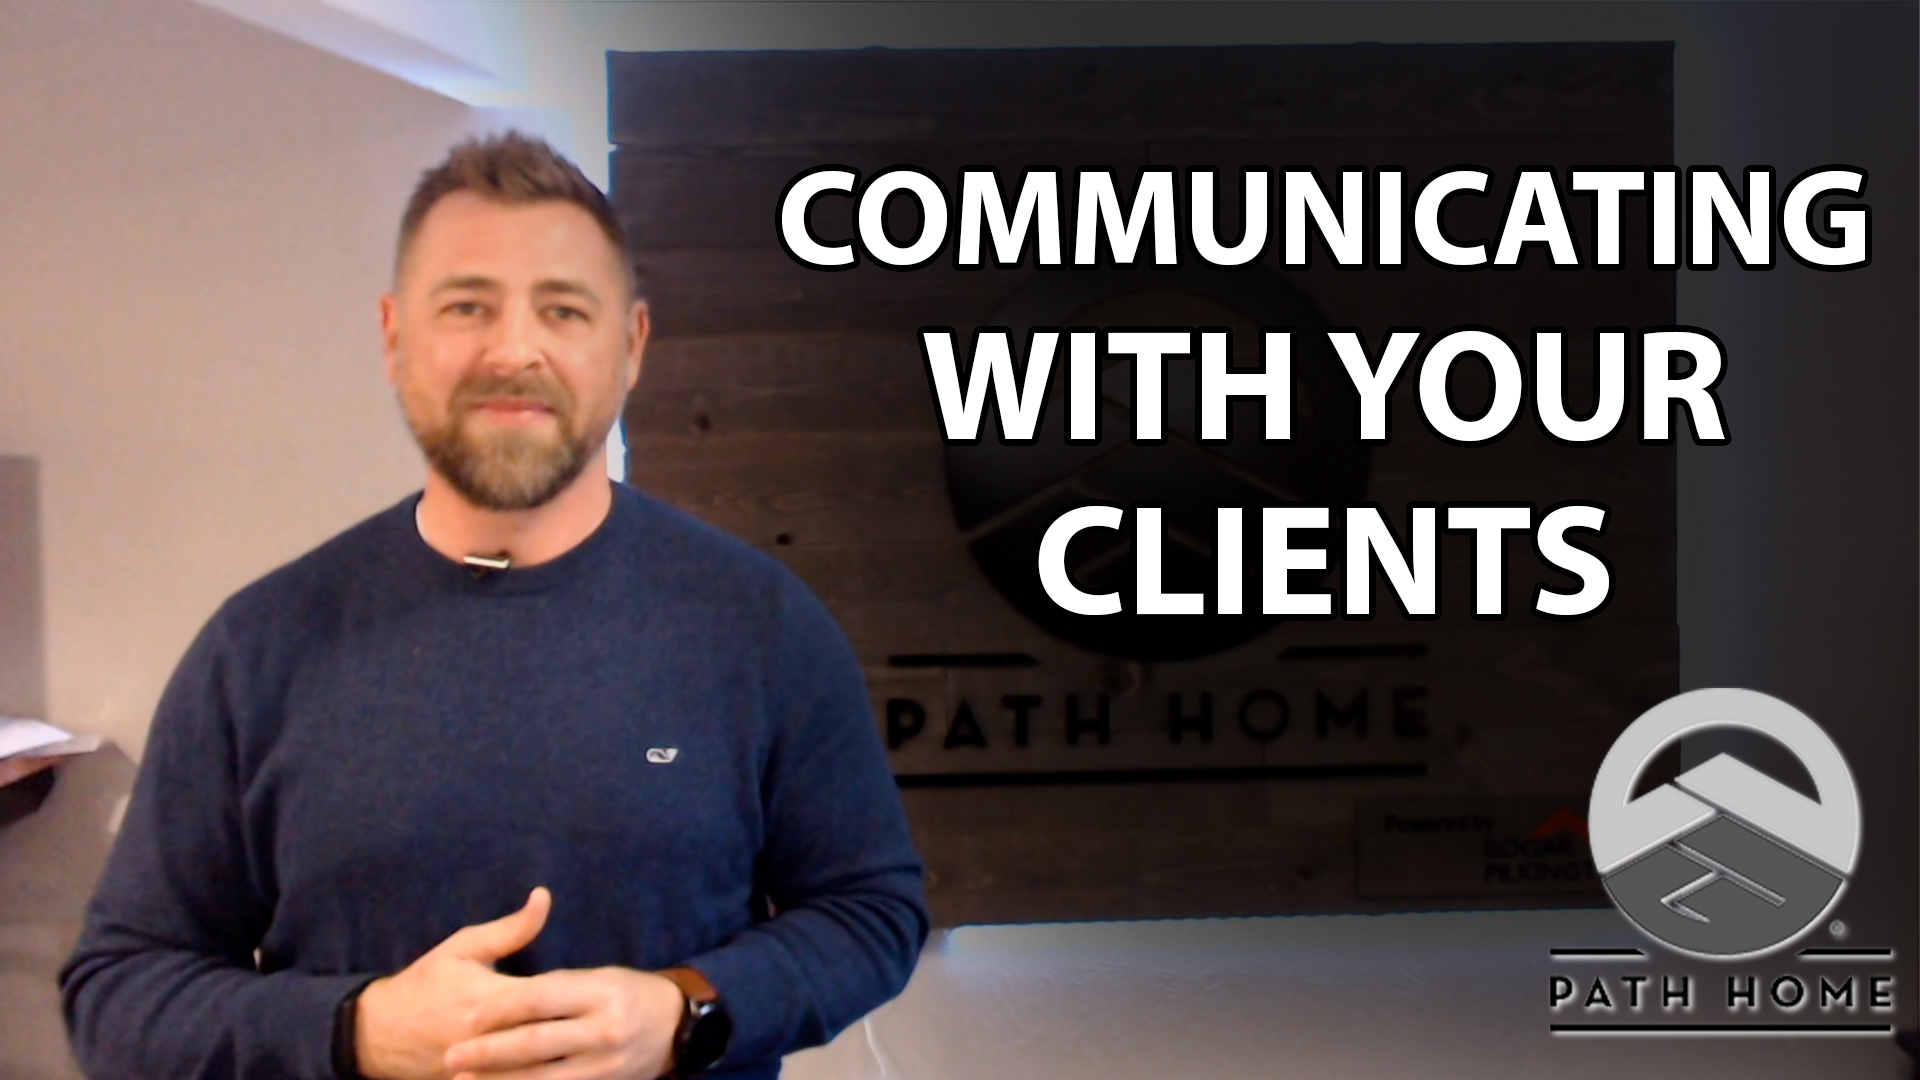 How Do You Open Communication With Your Clients in 2021?